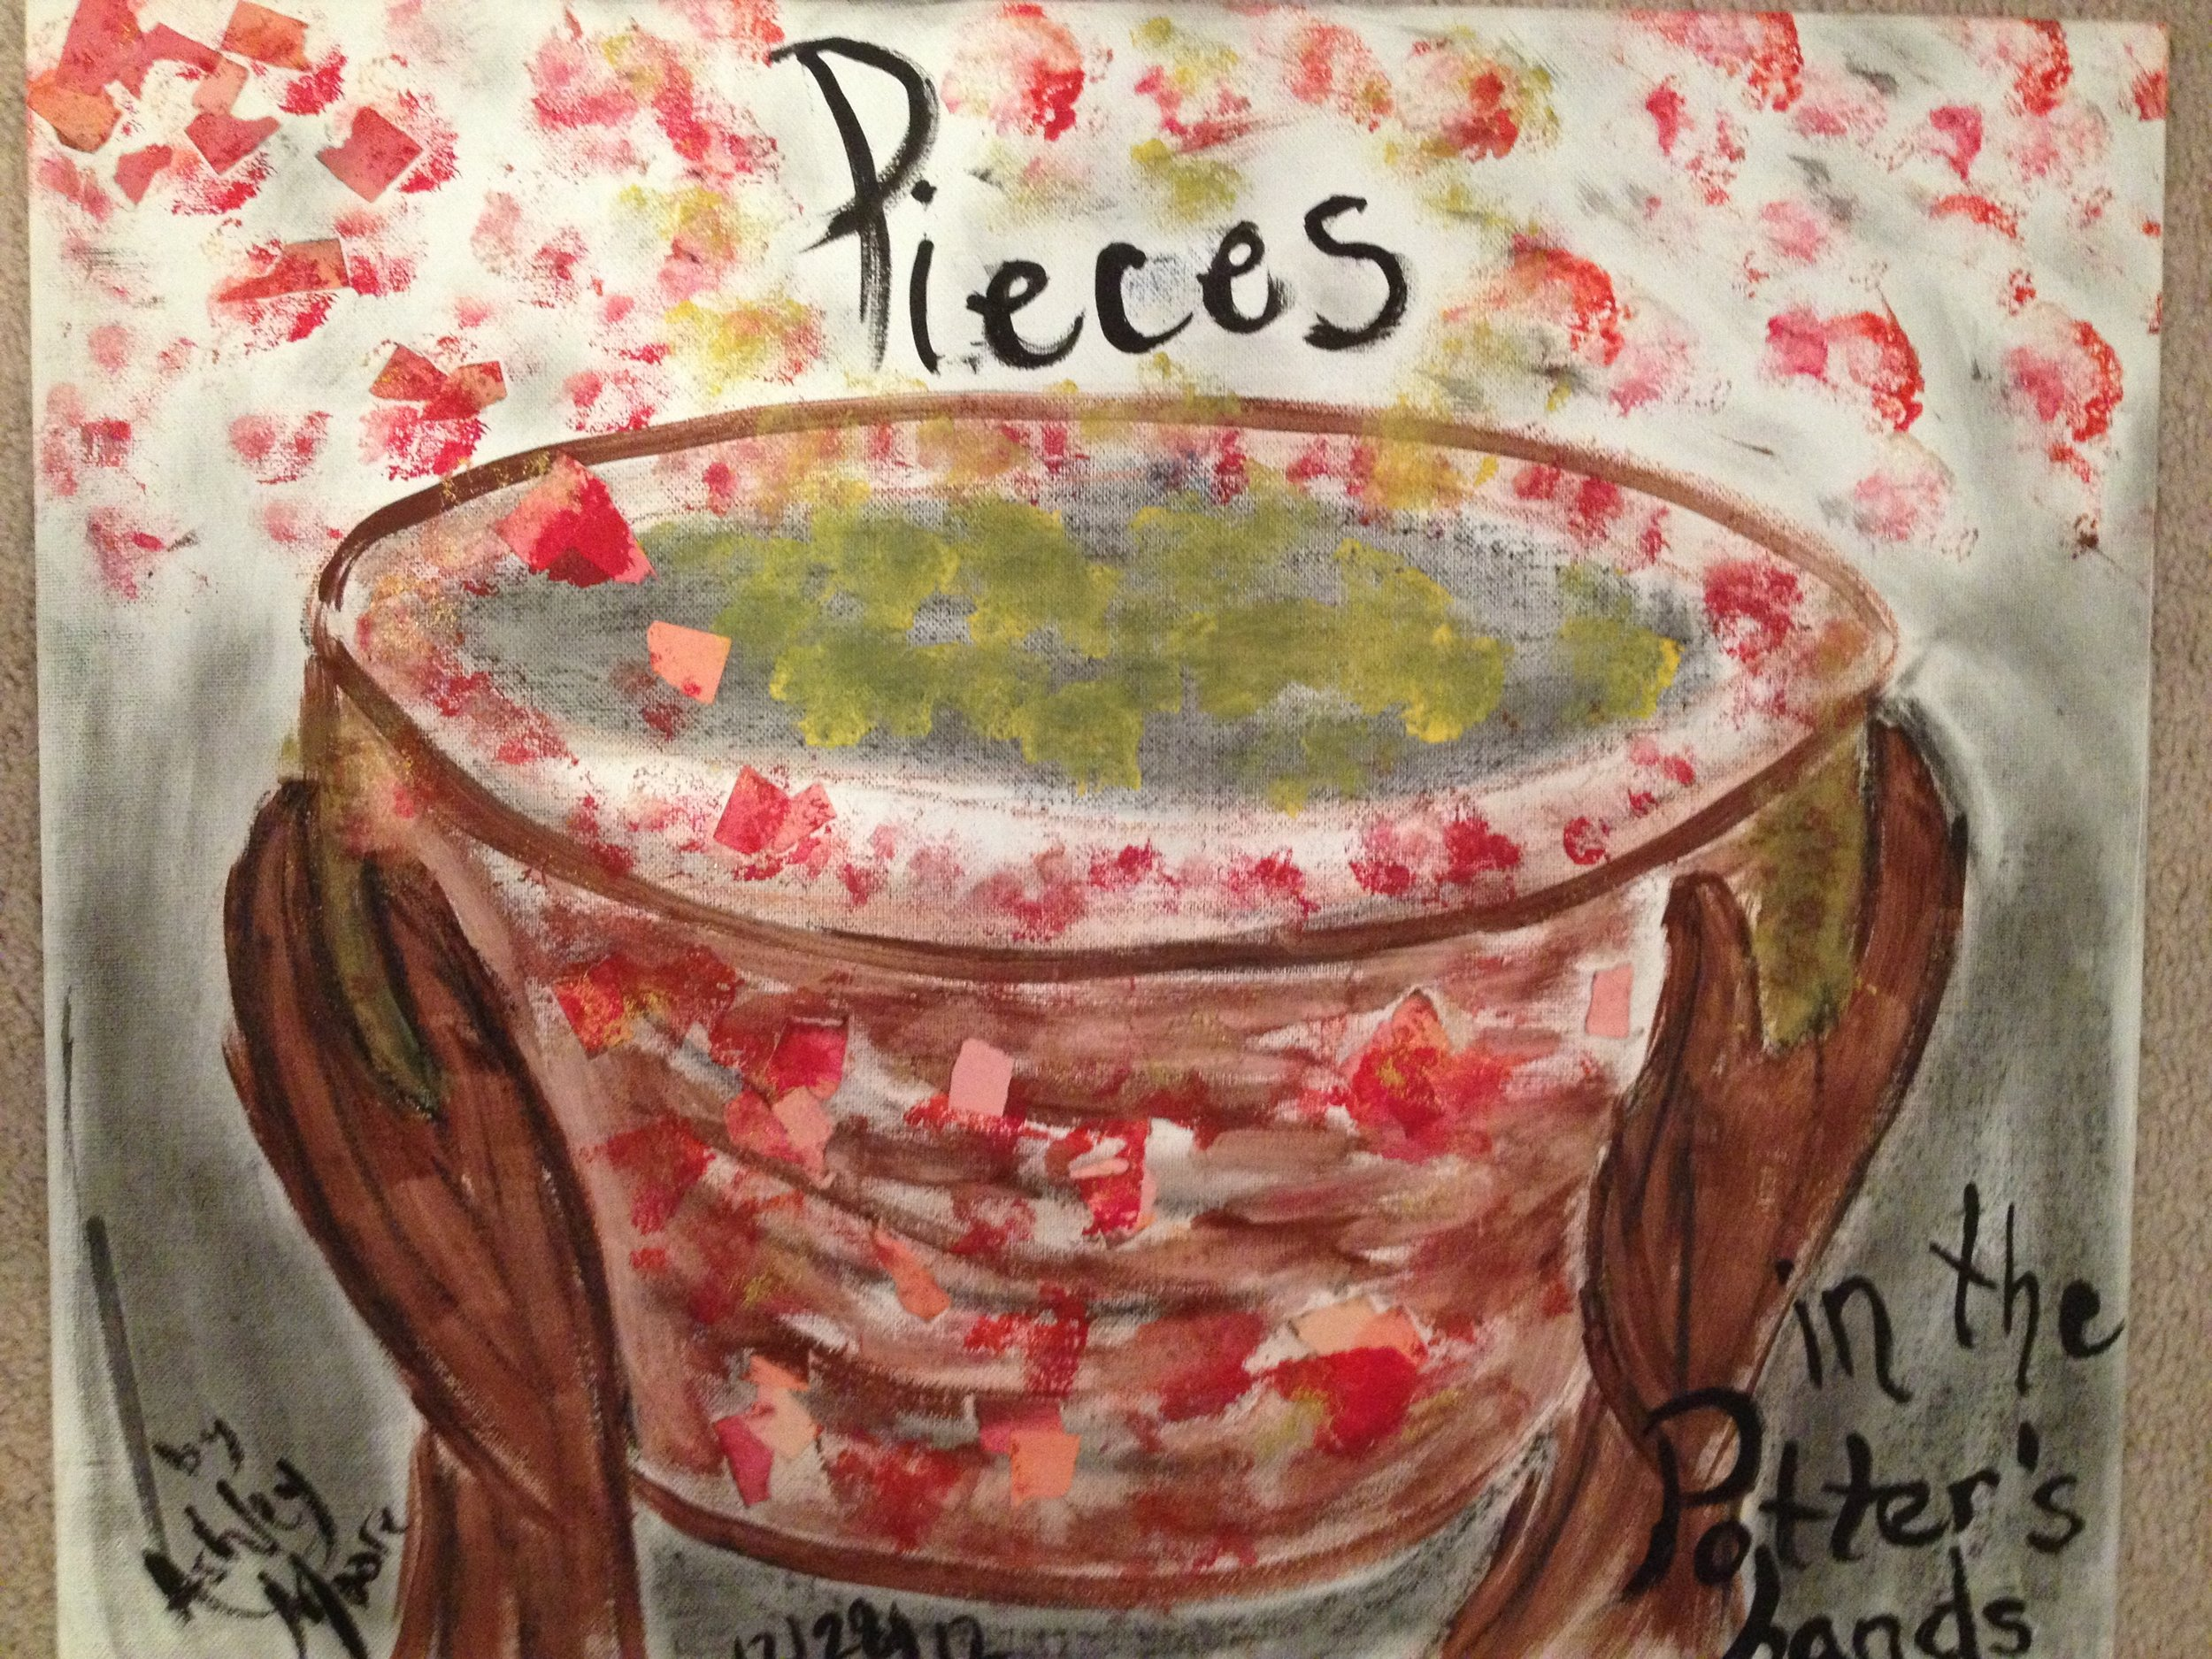 """Pieces in the Potter's Hands"""